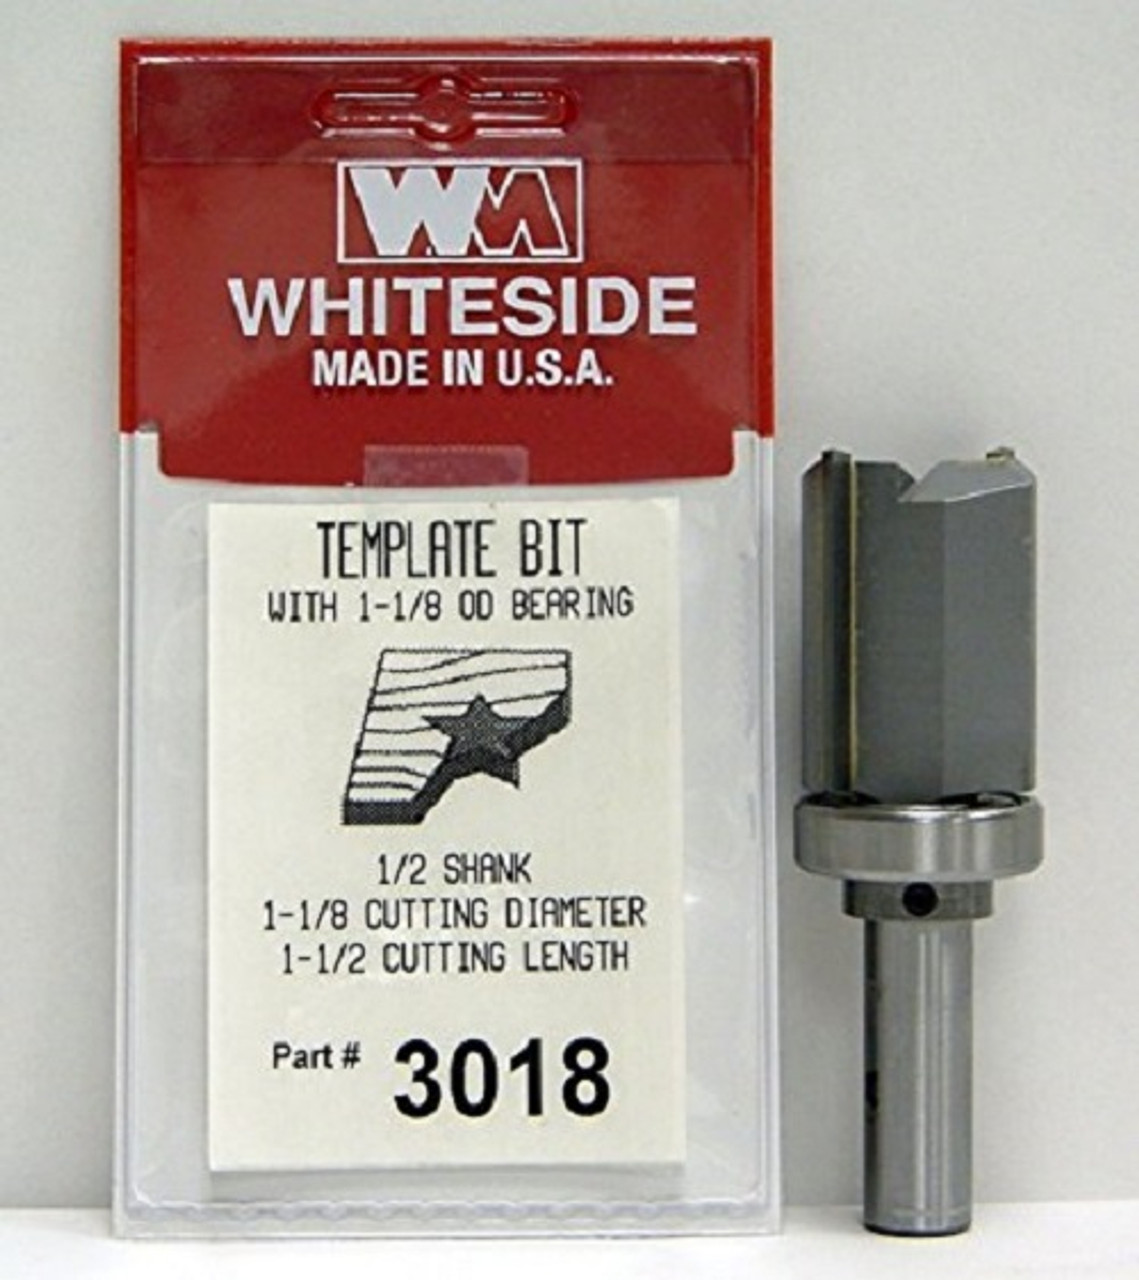 Whiteside Router Bits 3012 Template Bit with Ball Bearing